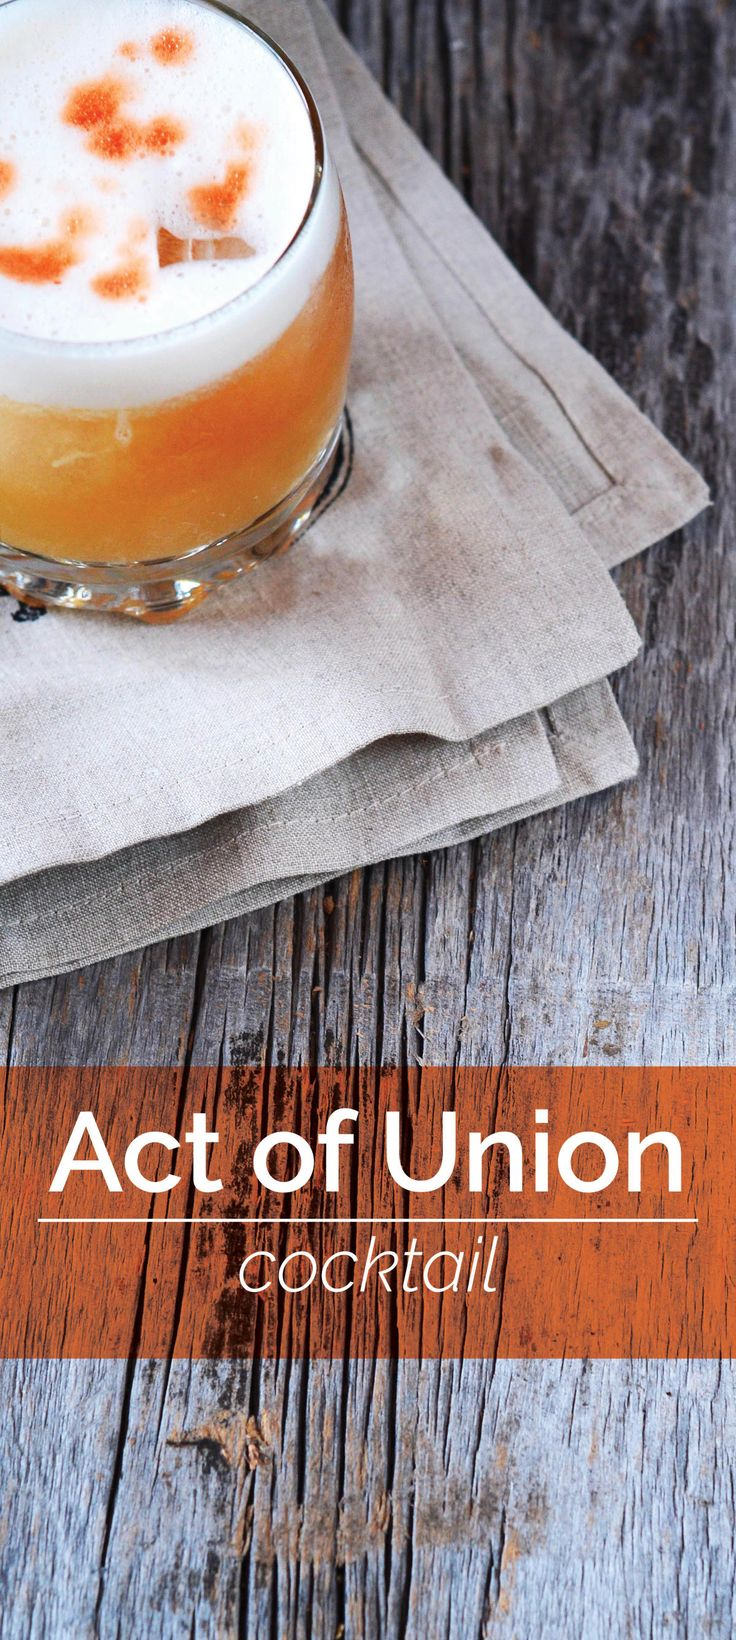 Act of Union is a tart, refreshing cocktail made with rum and blended Scotch. Simple to make, delicious and topped with an egg-white foam. Perfect cocktail for this holiday season.